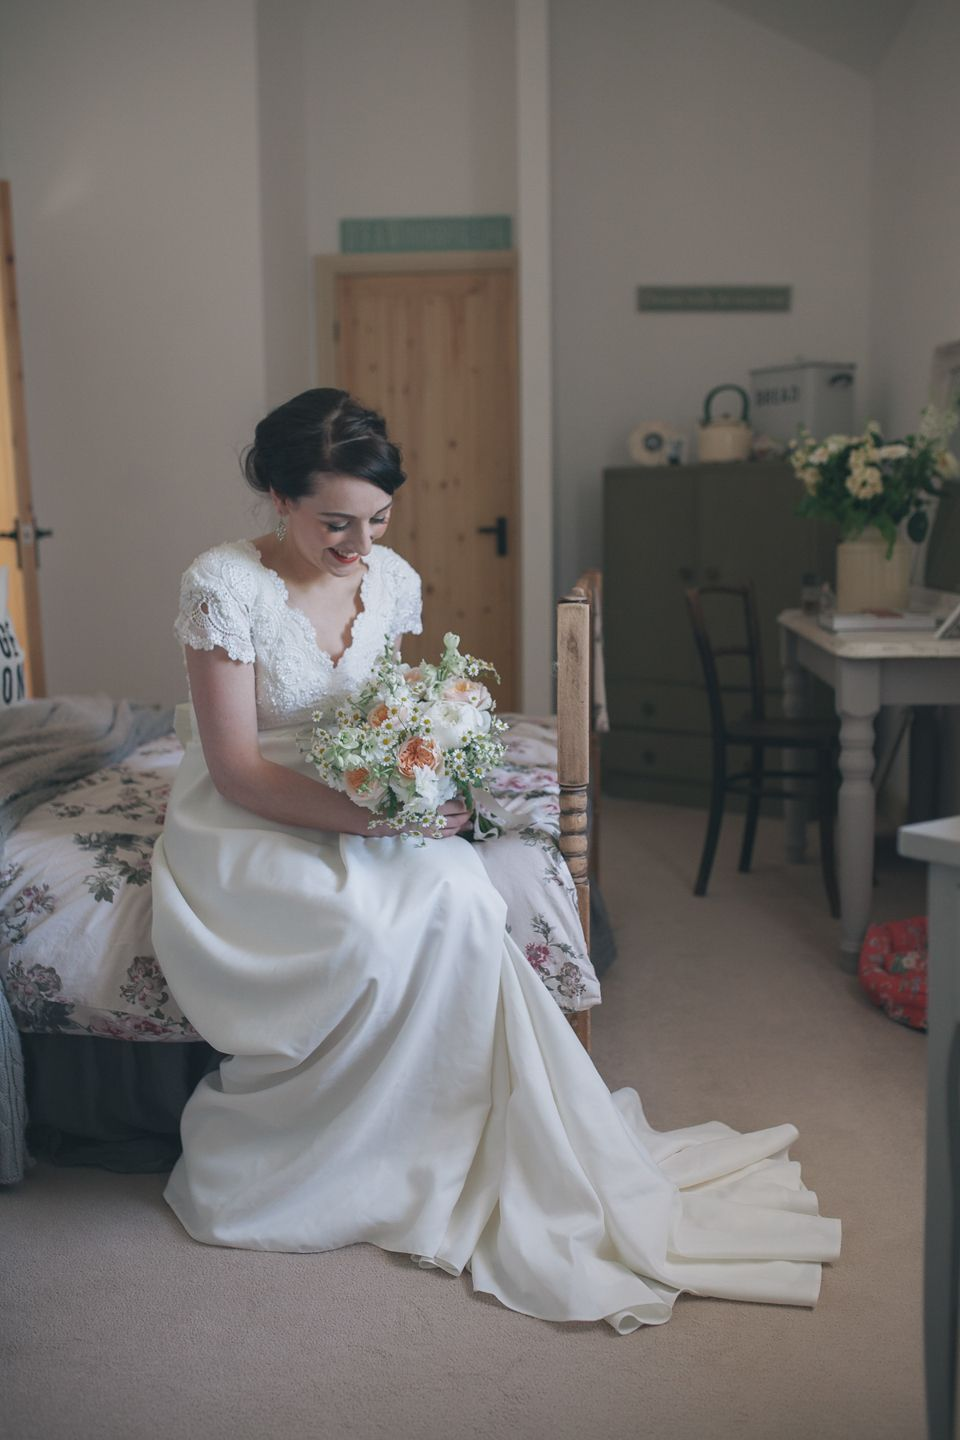 A beautiful vintage inspired village hall wedding with a bride wearing an original vintage wedding dress. Photography by Sally T